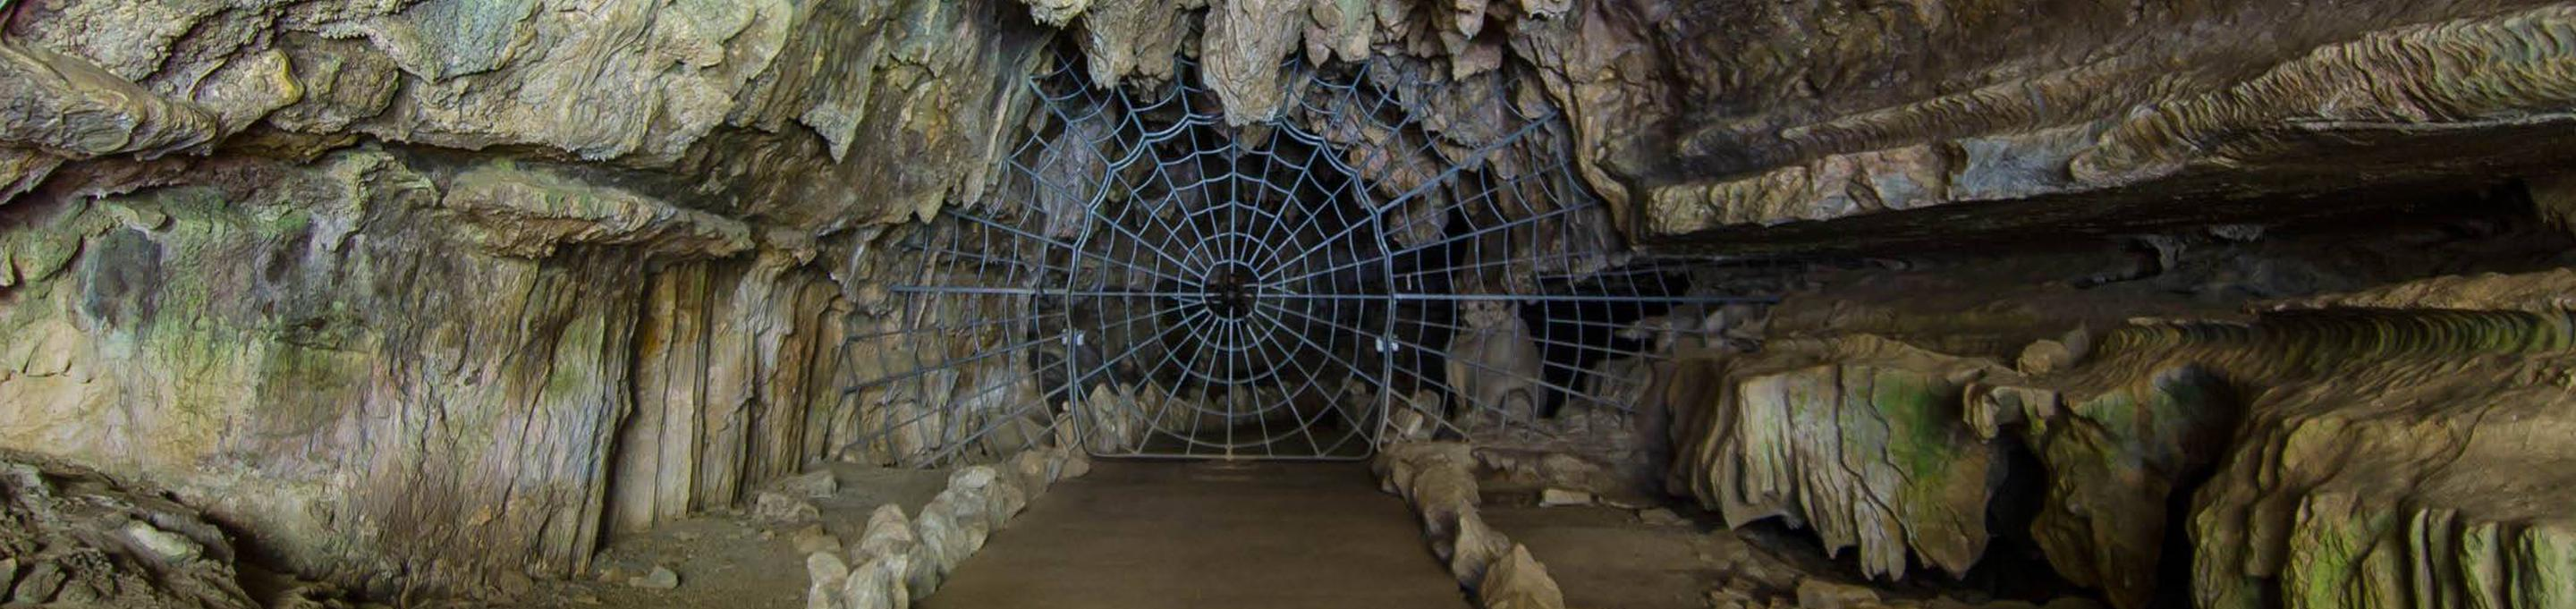 In order to enter Crystal Cave you must first pass through the famous historical Spider Web Gate. The gate was installed in 1939.The Spider Web Gate was installed in 1939.